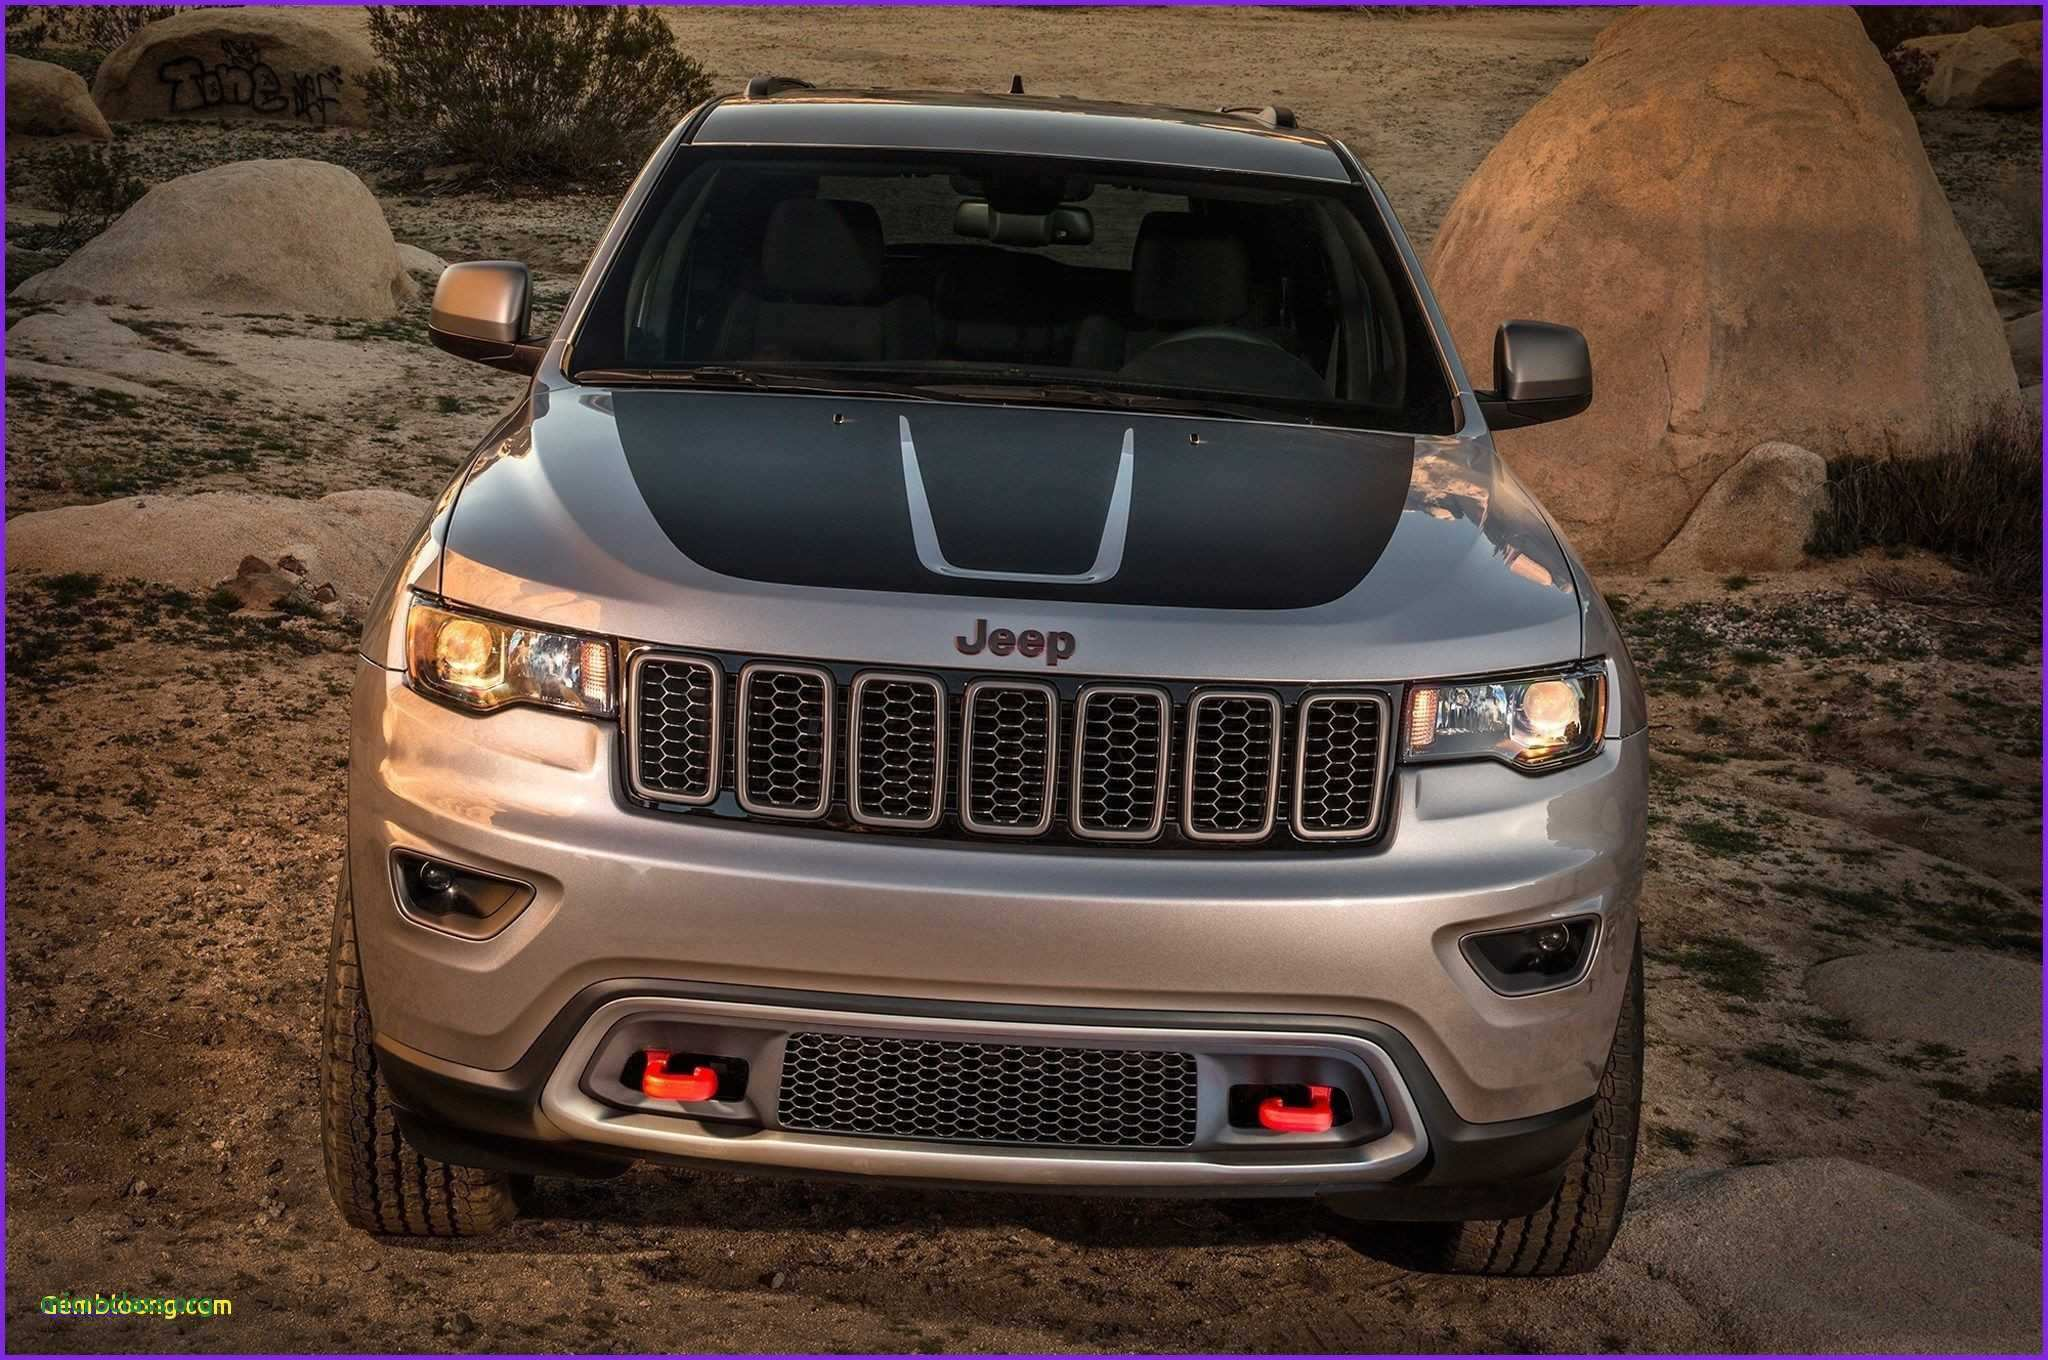 65 Gallery of 2020 Jeep Grand Cherokee Diesel Interior by 2020 Jeep Grand Cherokee Diesel